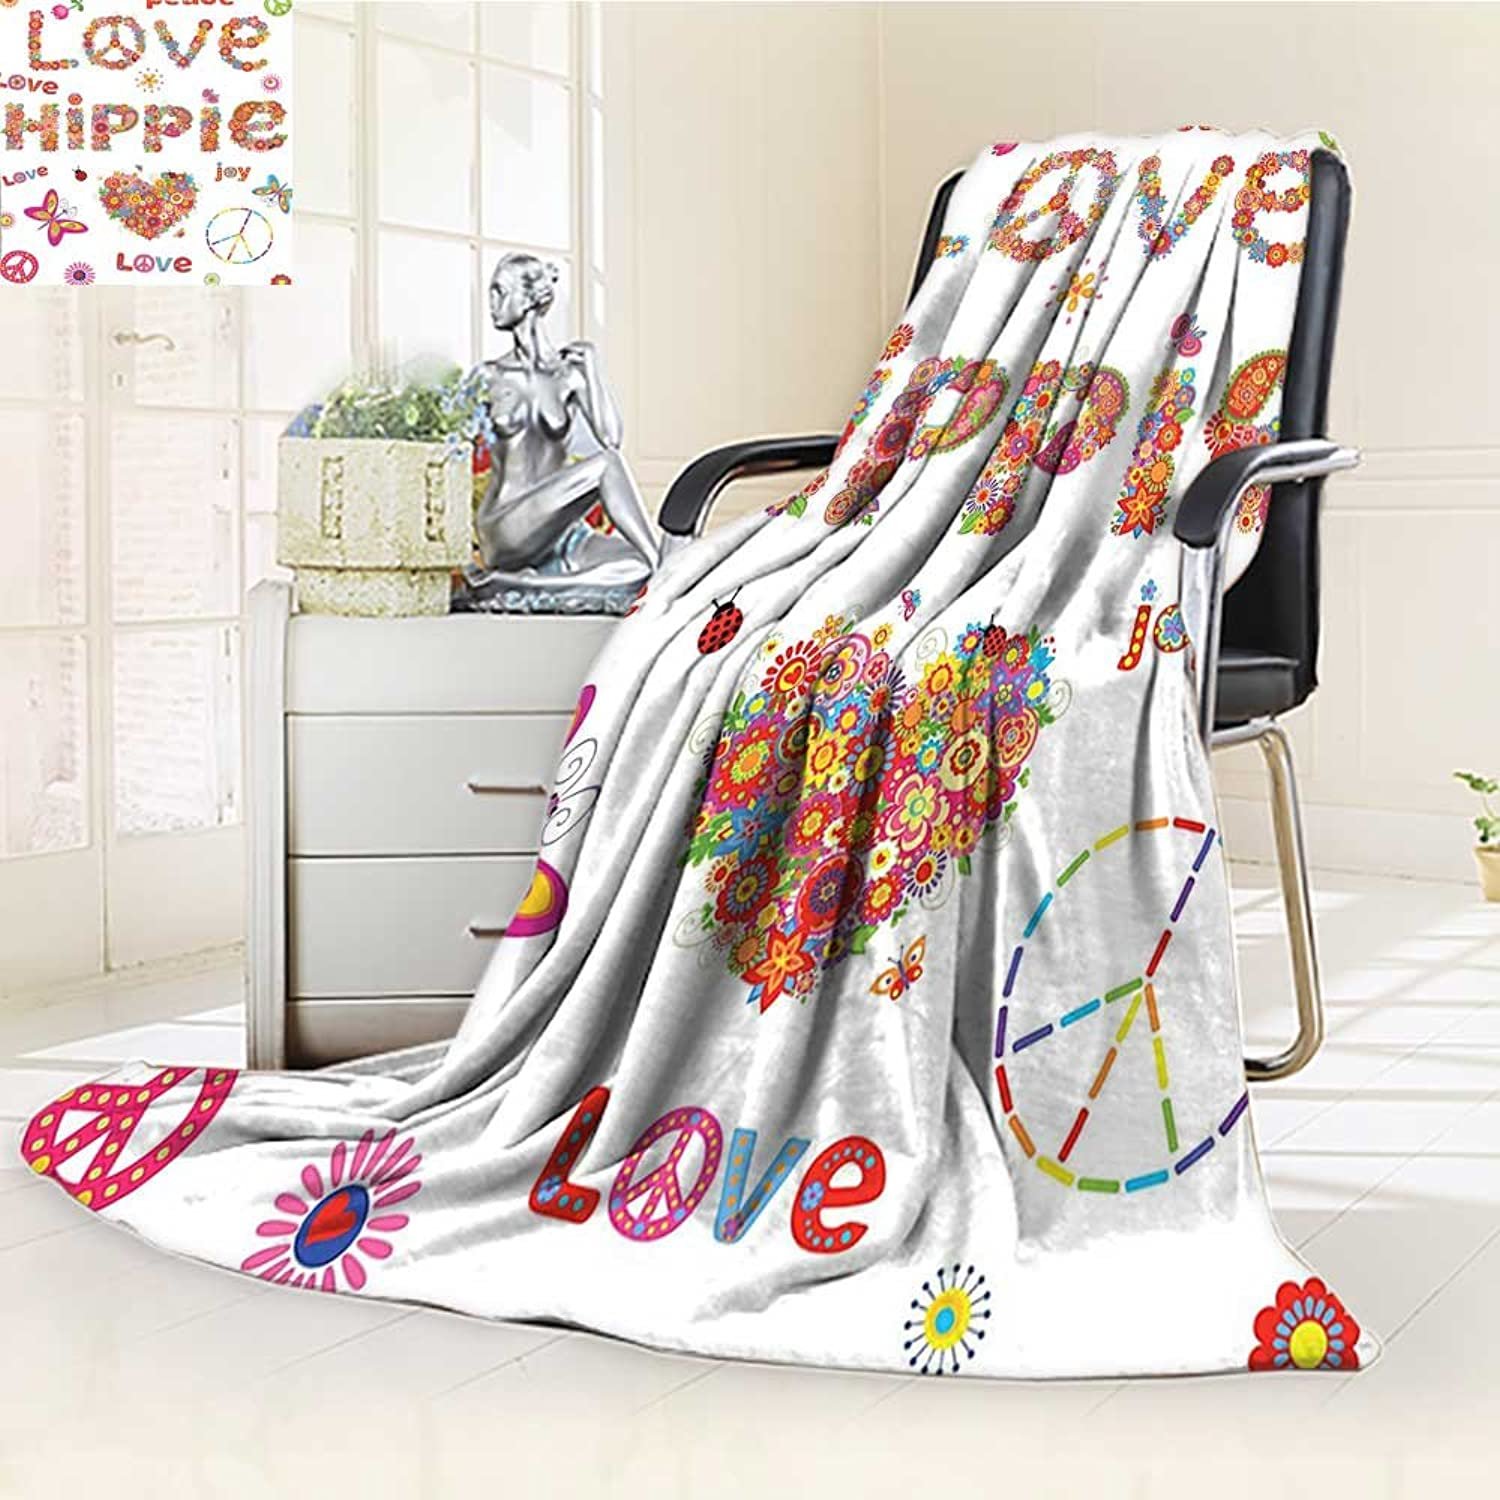 YOYI-HOME Fleece Duplex Printed Blanket 300 GSM Anti-Static Super Soft Hippie Flowers Festive Season Ladybird Ladybugs Nature Flourishes Art Print Bed Blanket Couch Blanket  W59 x H39.5